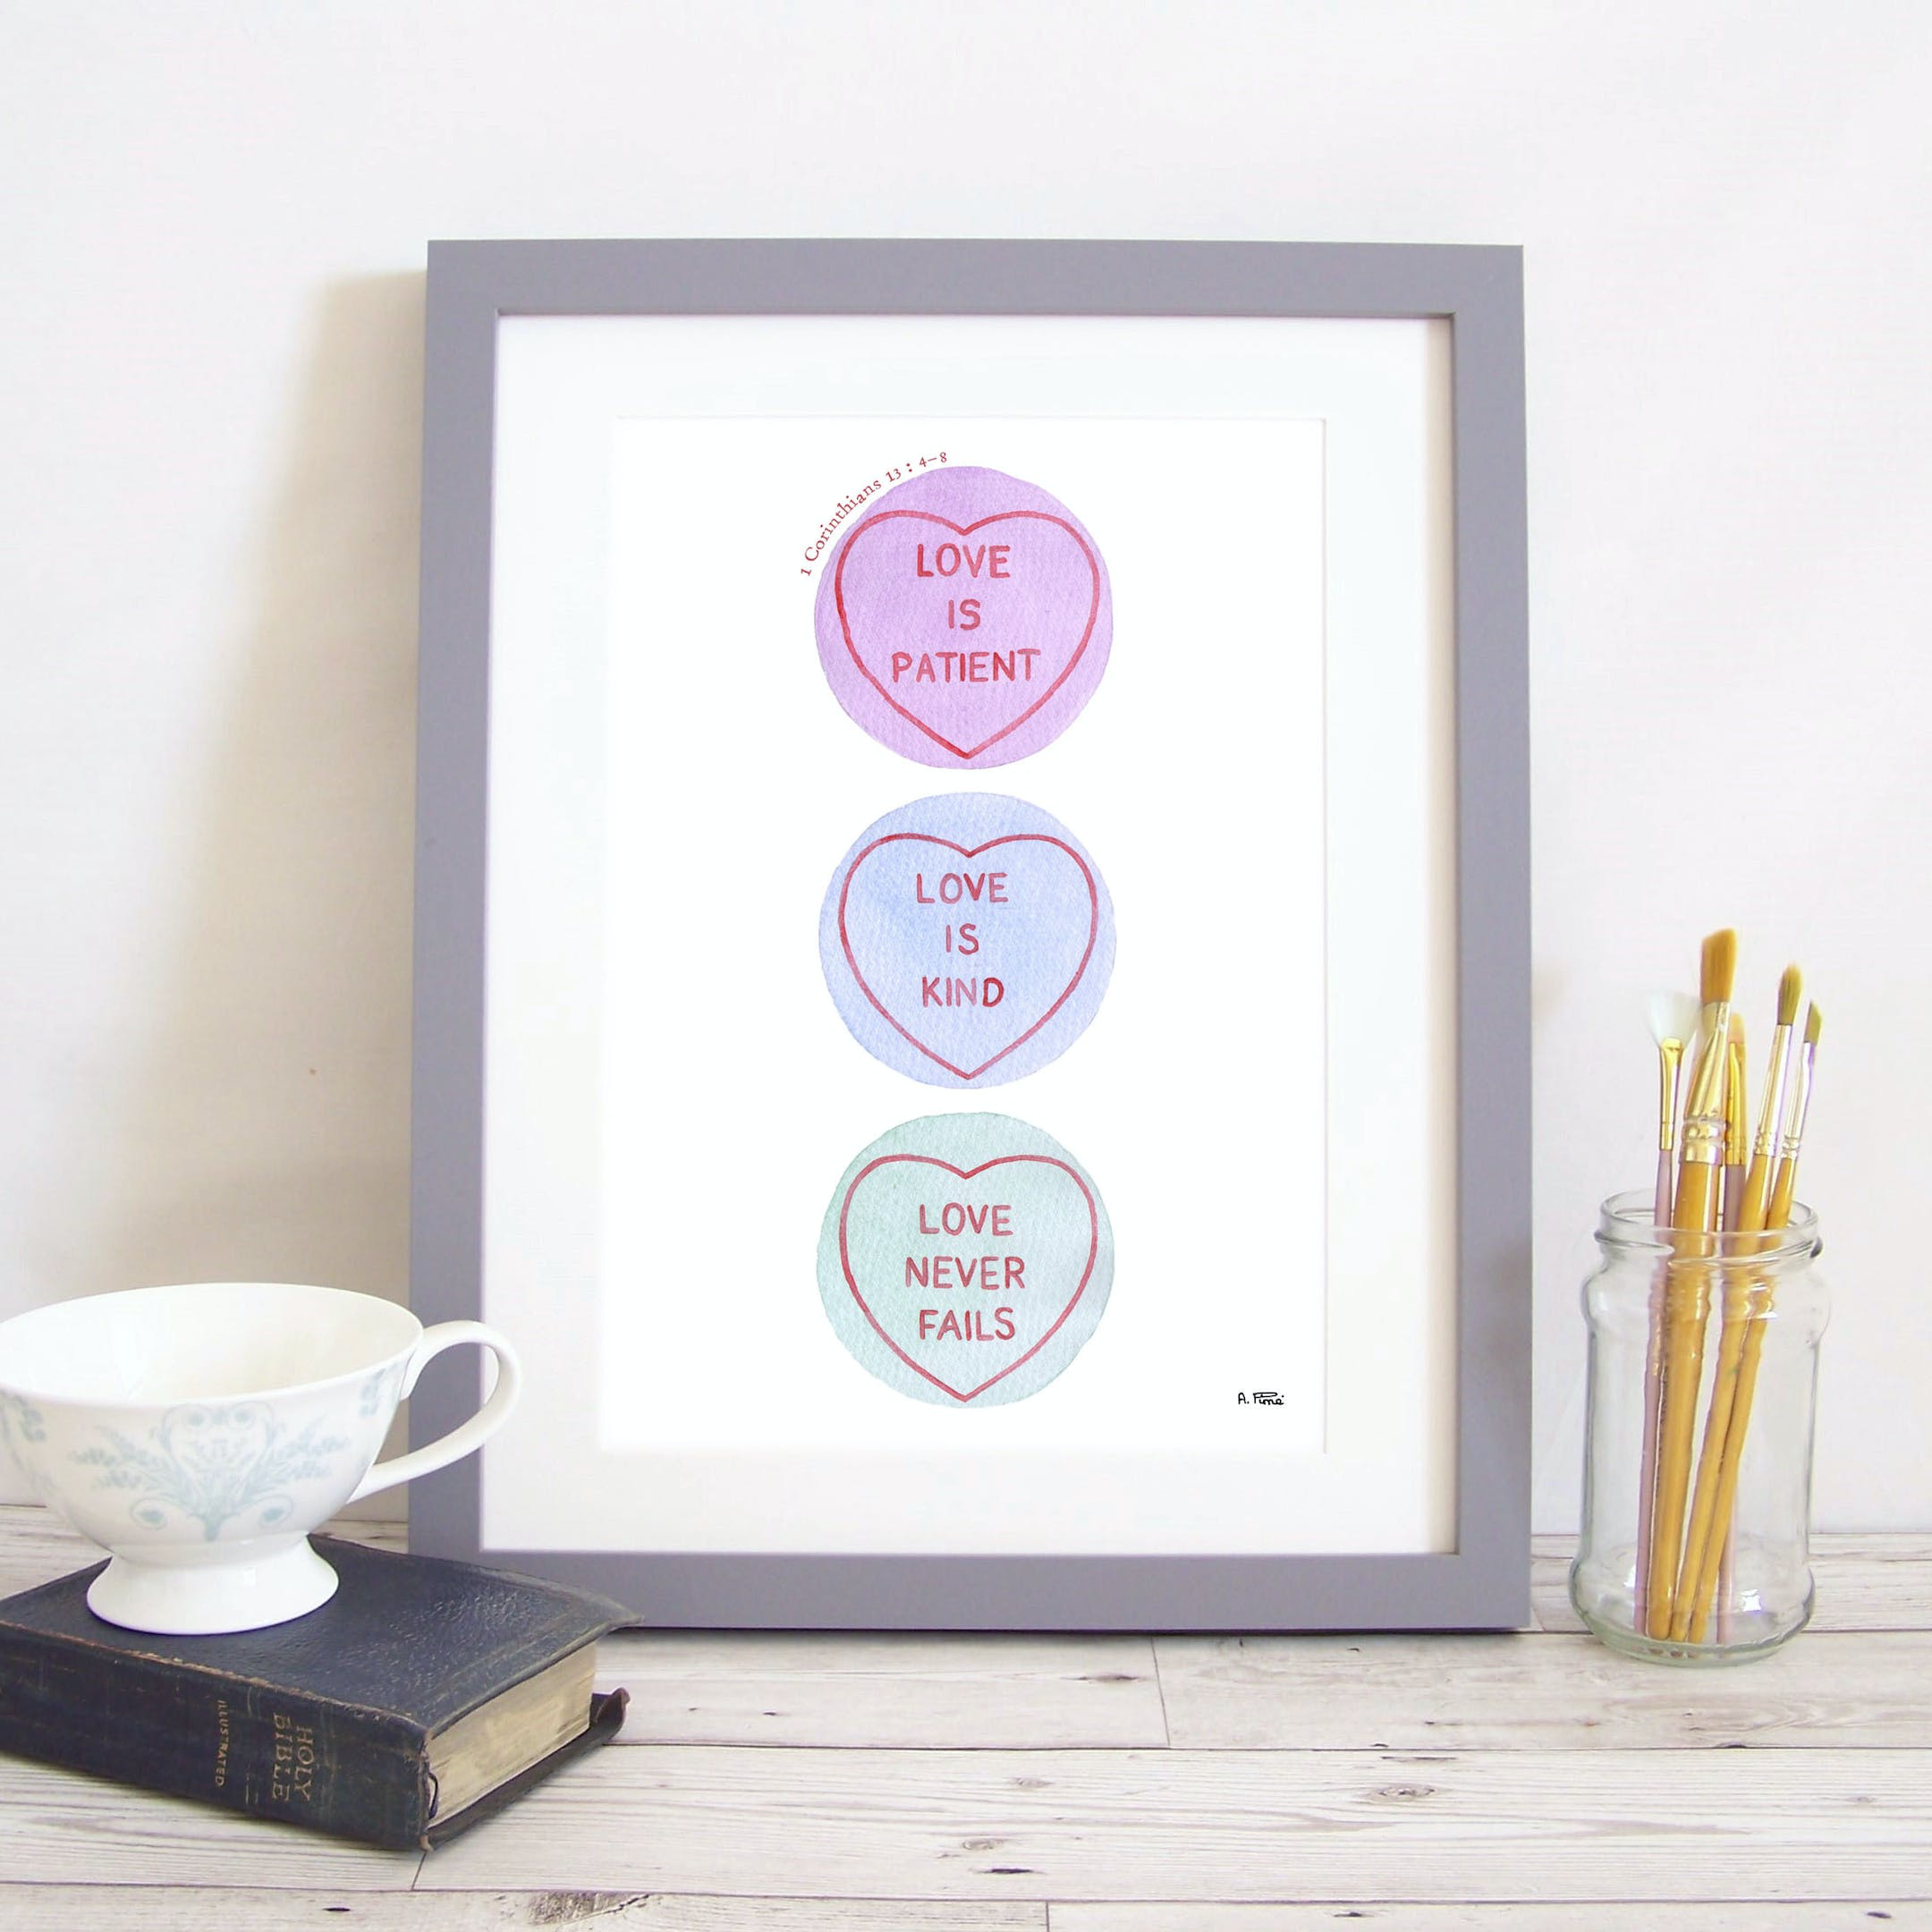 3 Love Hearts in a vertical line with different verses from 1 Corinthians 13 inside by Alice and the Mustard Seed